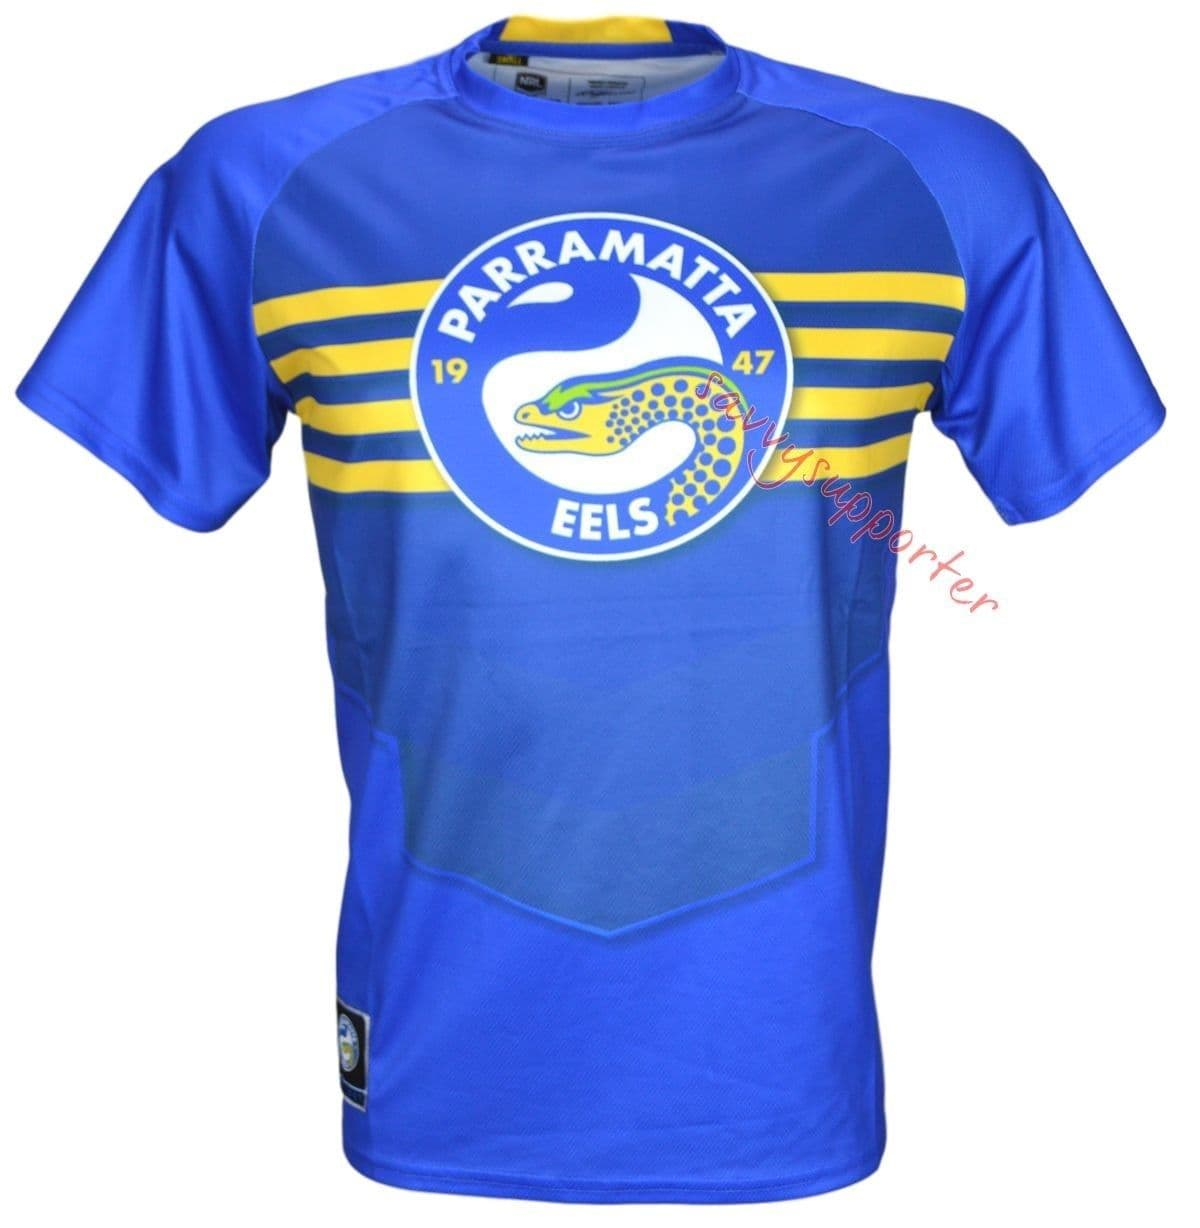 Parramatta Eels NRL Classic Sublimated Training Shirt Size